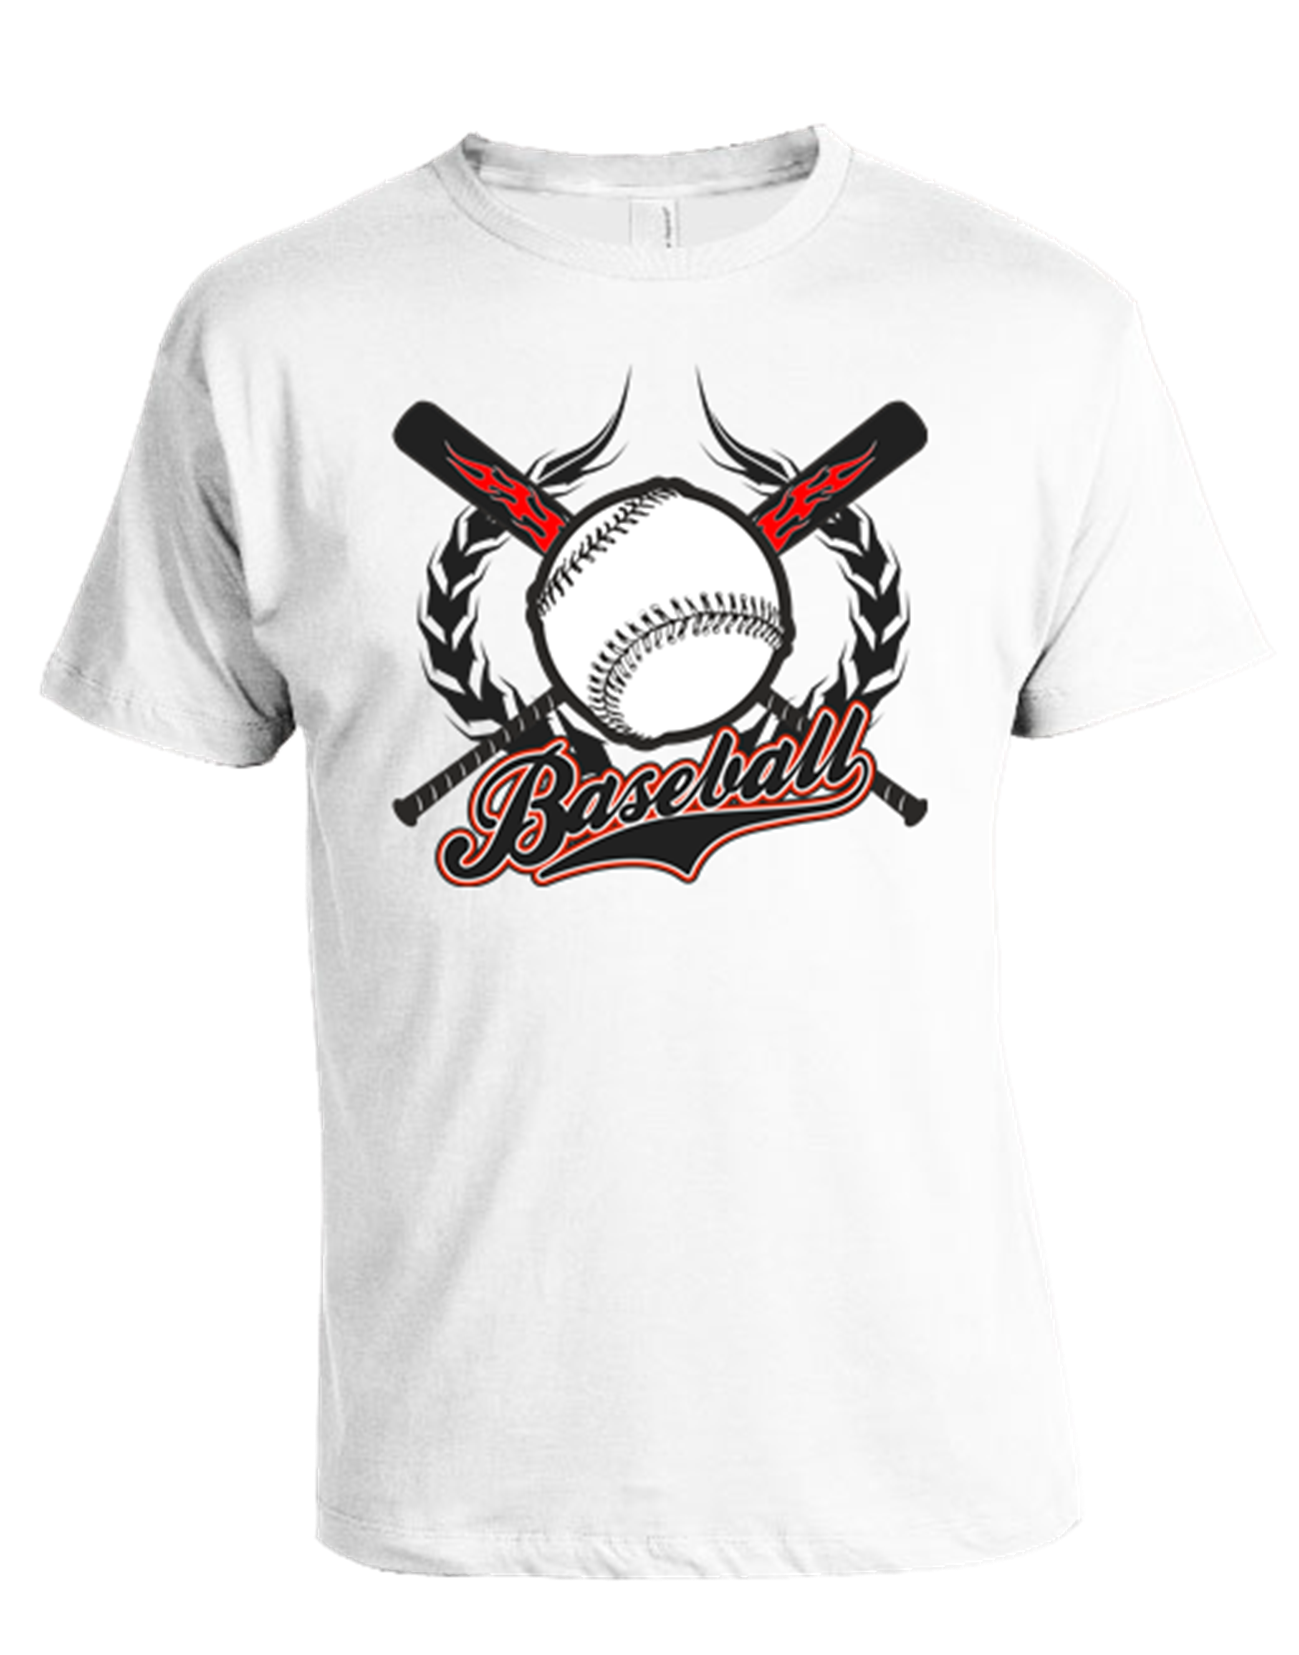 Baseball design t shirt Designer baseball shirts